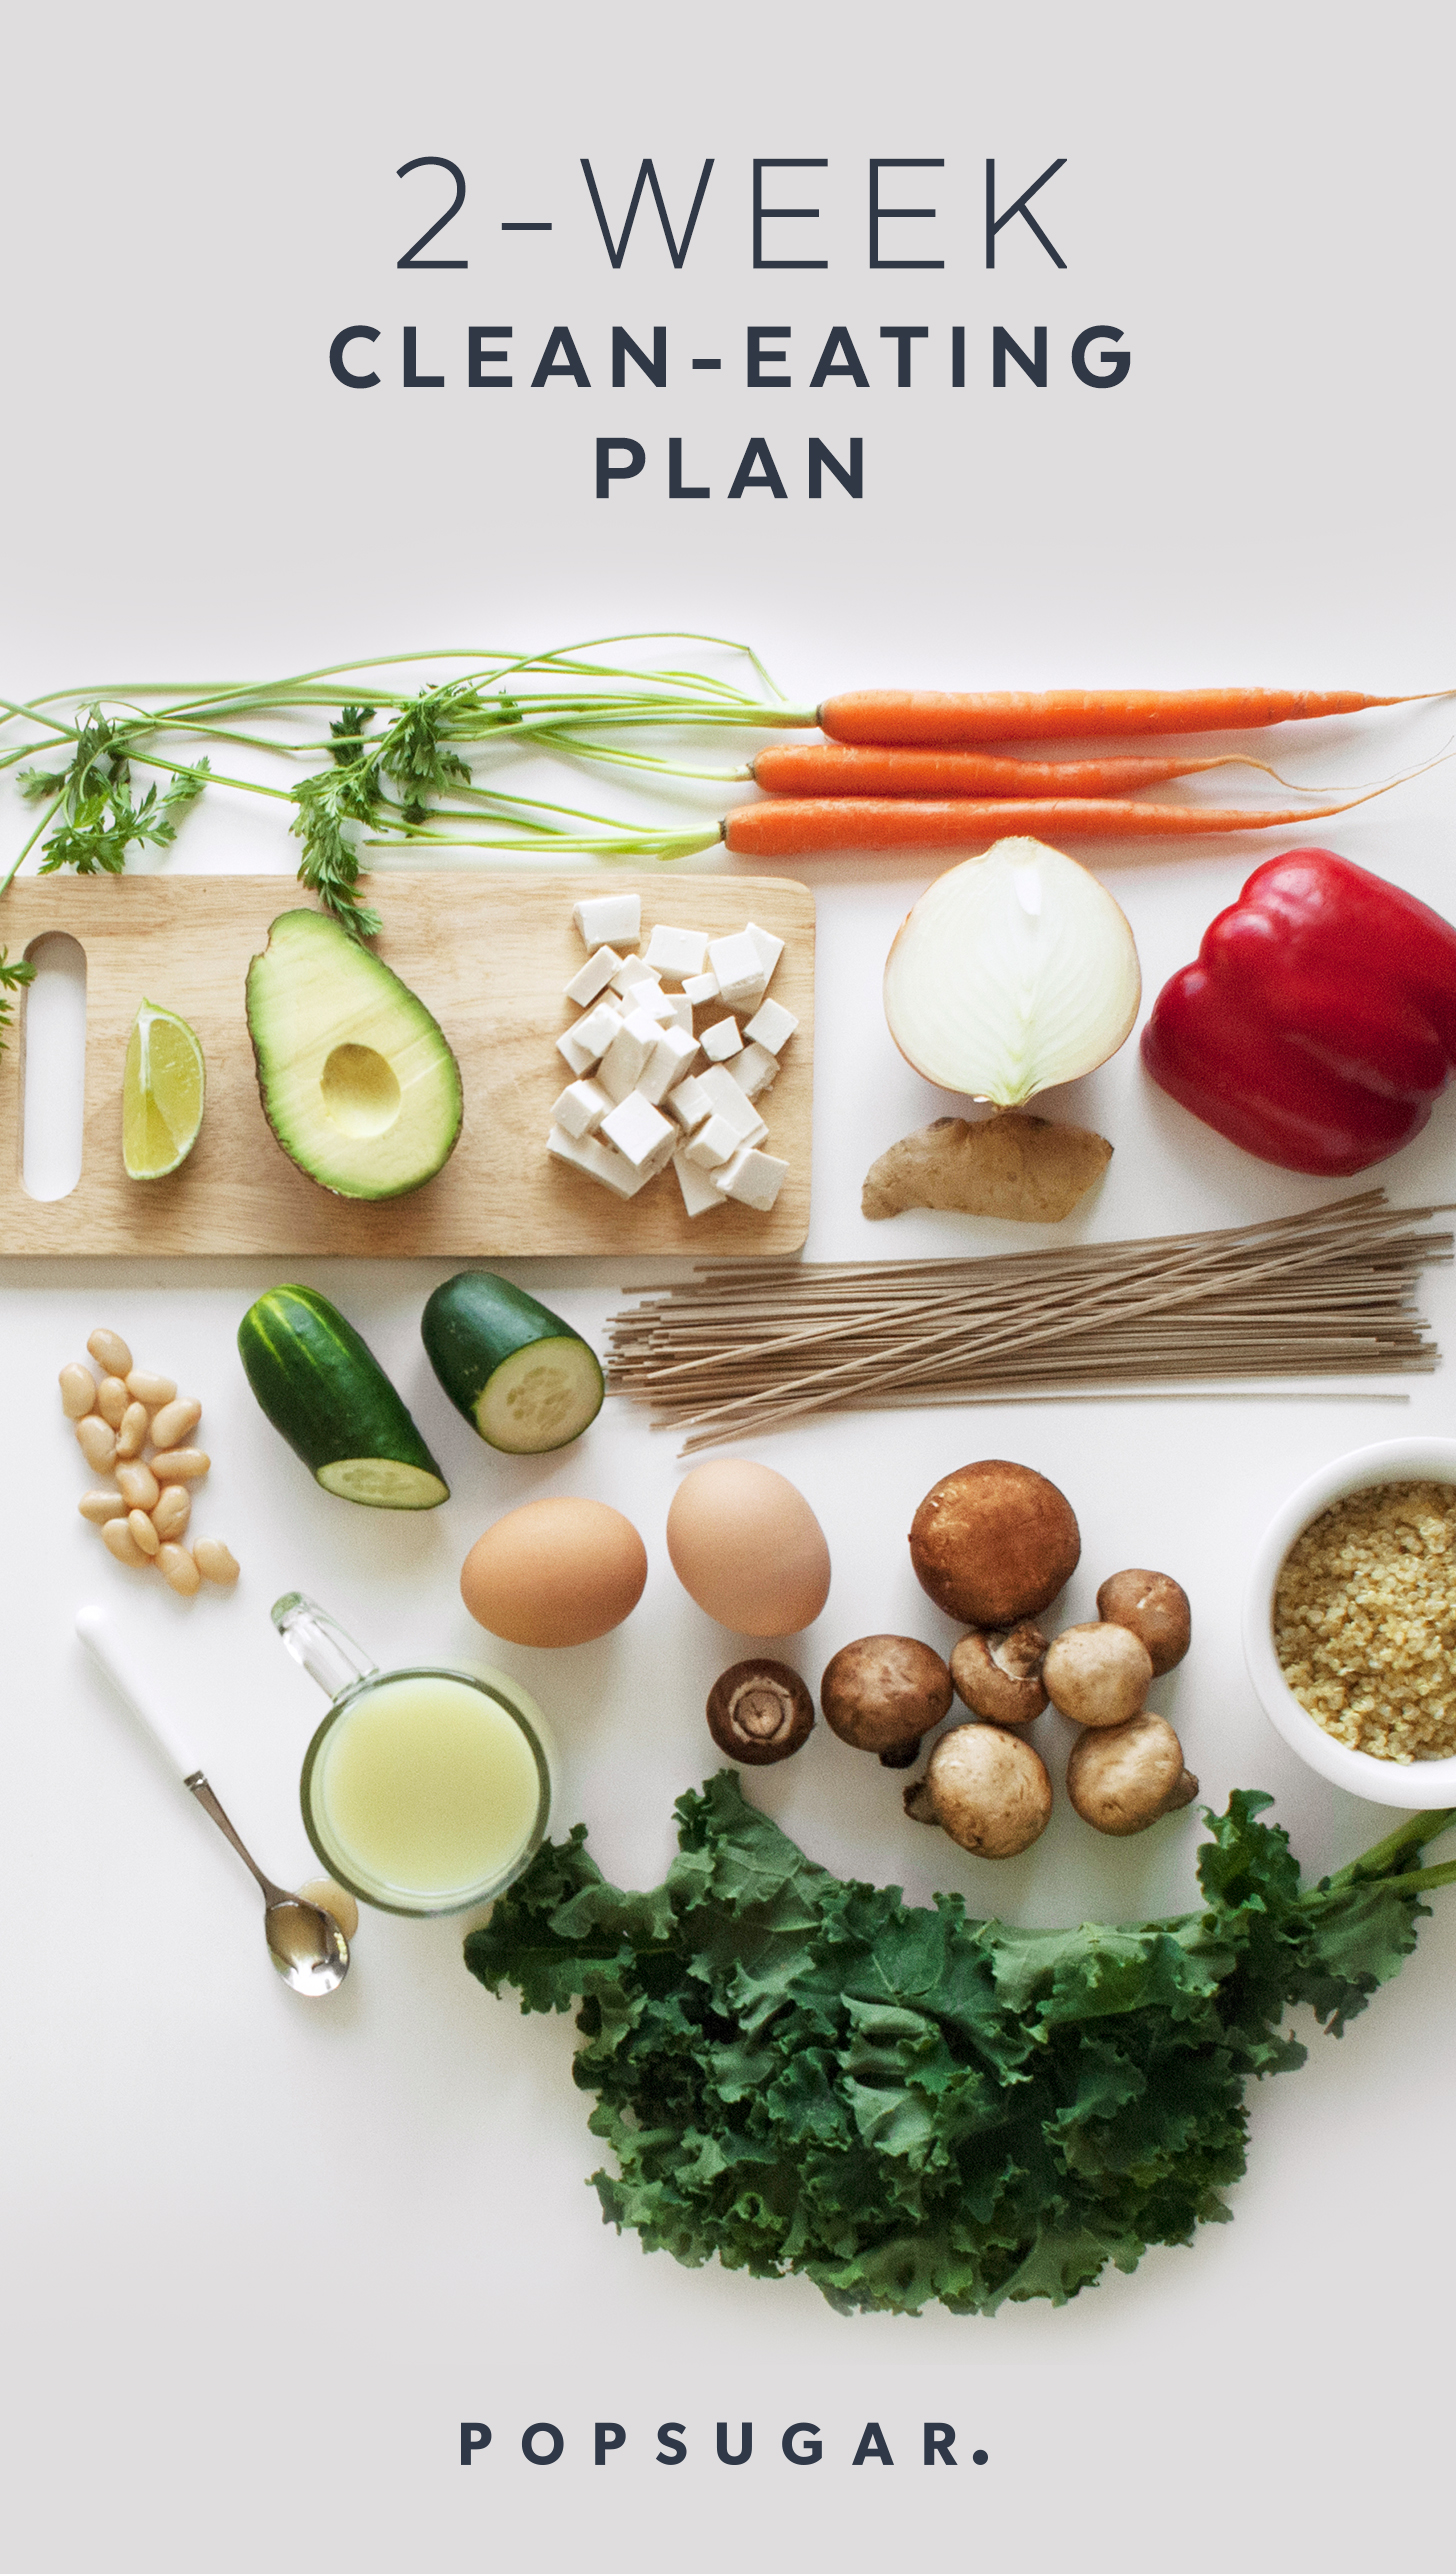 Here's our easy -to-follow 2-Week Clean-Eating Plan with recipes, shopping lists, and a printable daily rundown of what to eat and